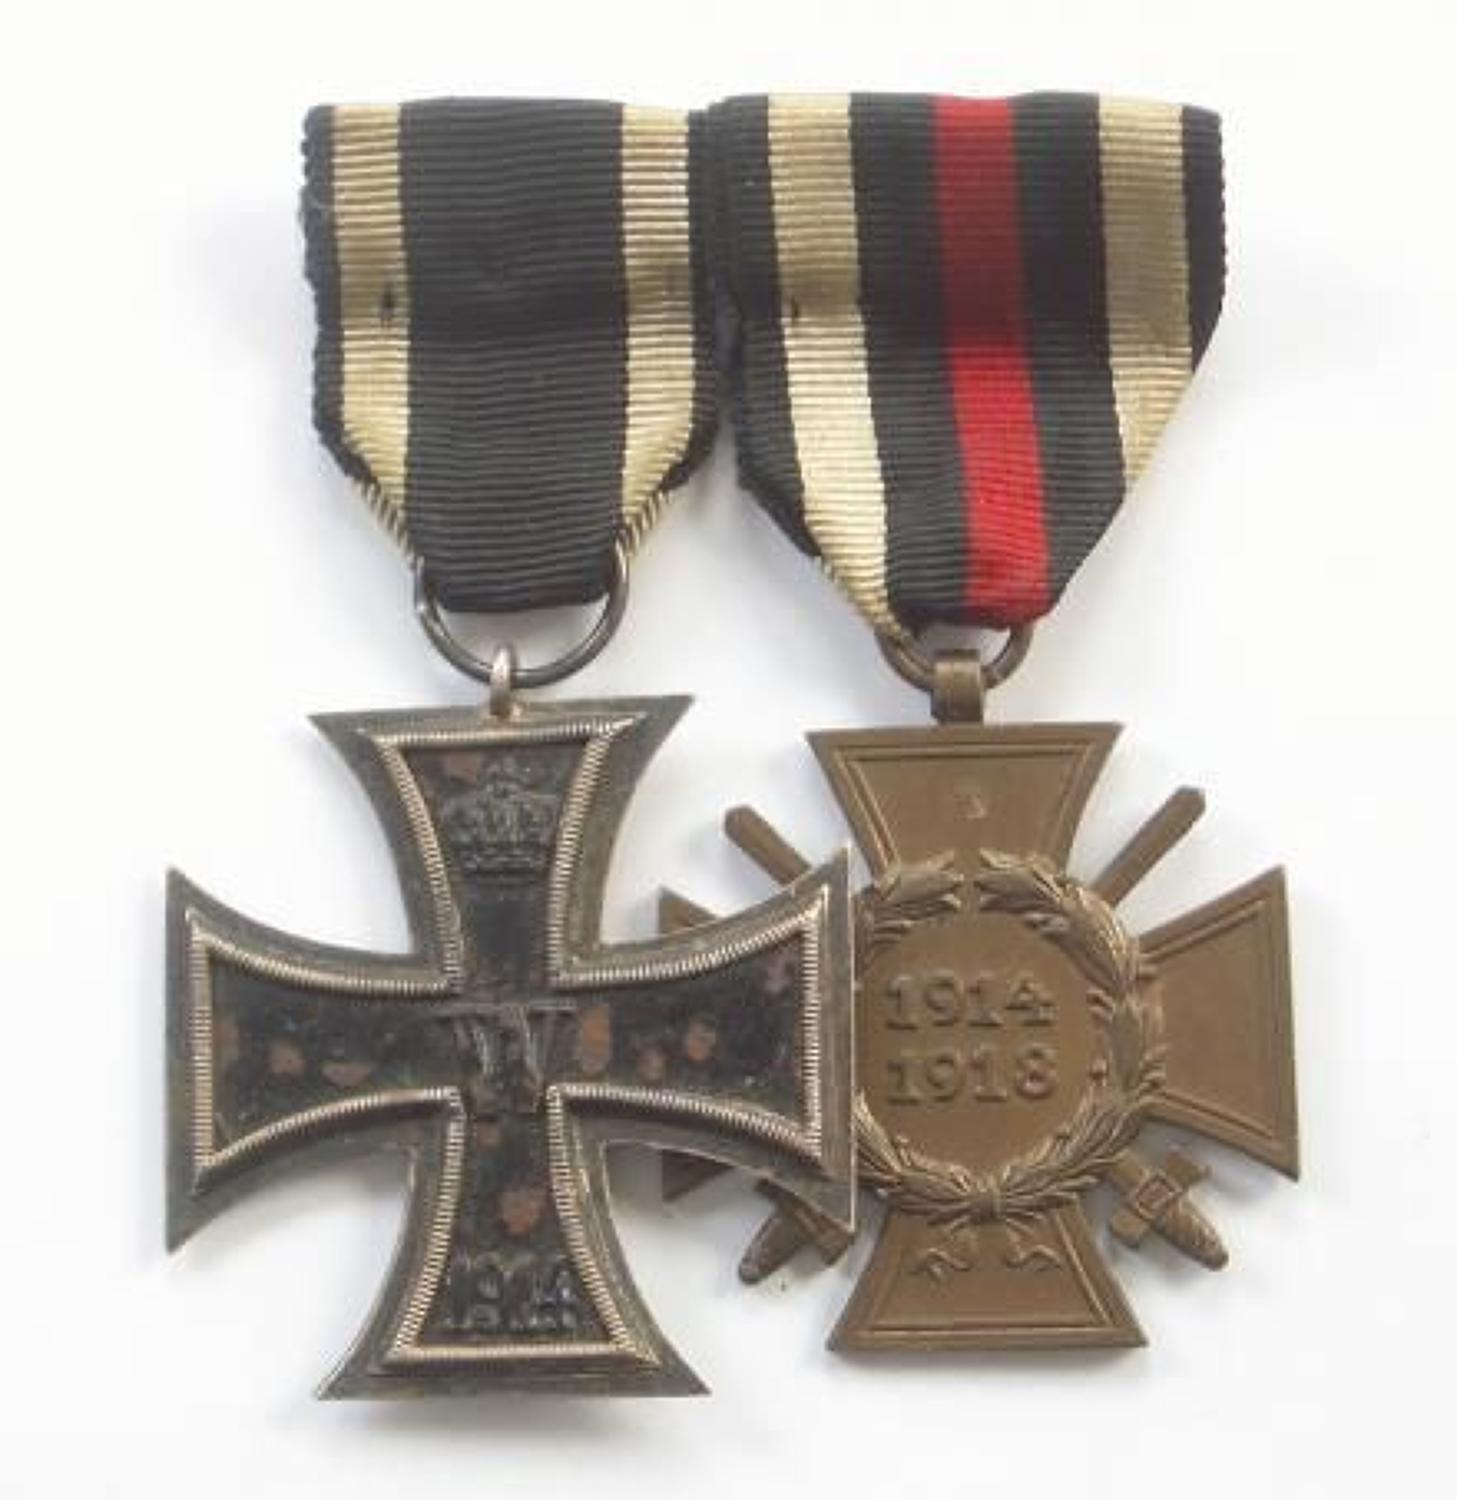 WW1 Imperial German Iron Cross 2nd Class & Honour Cross Pair of Medals